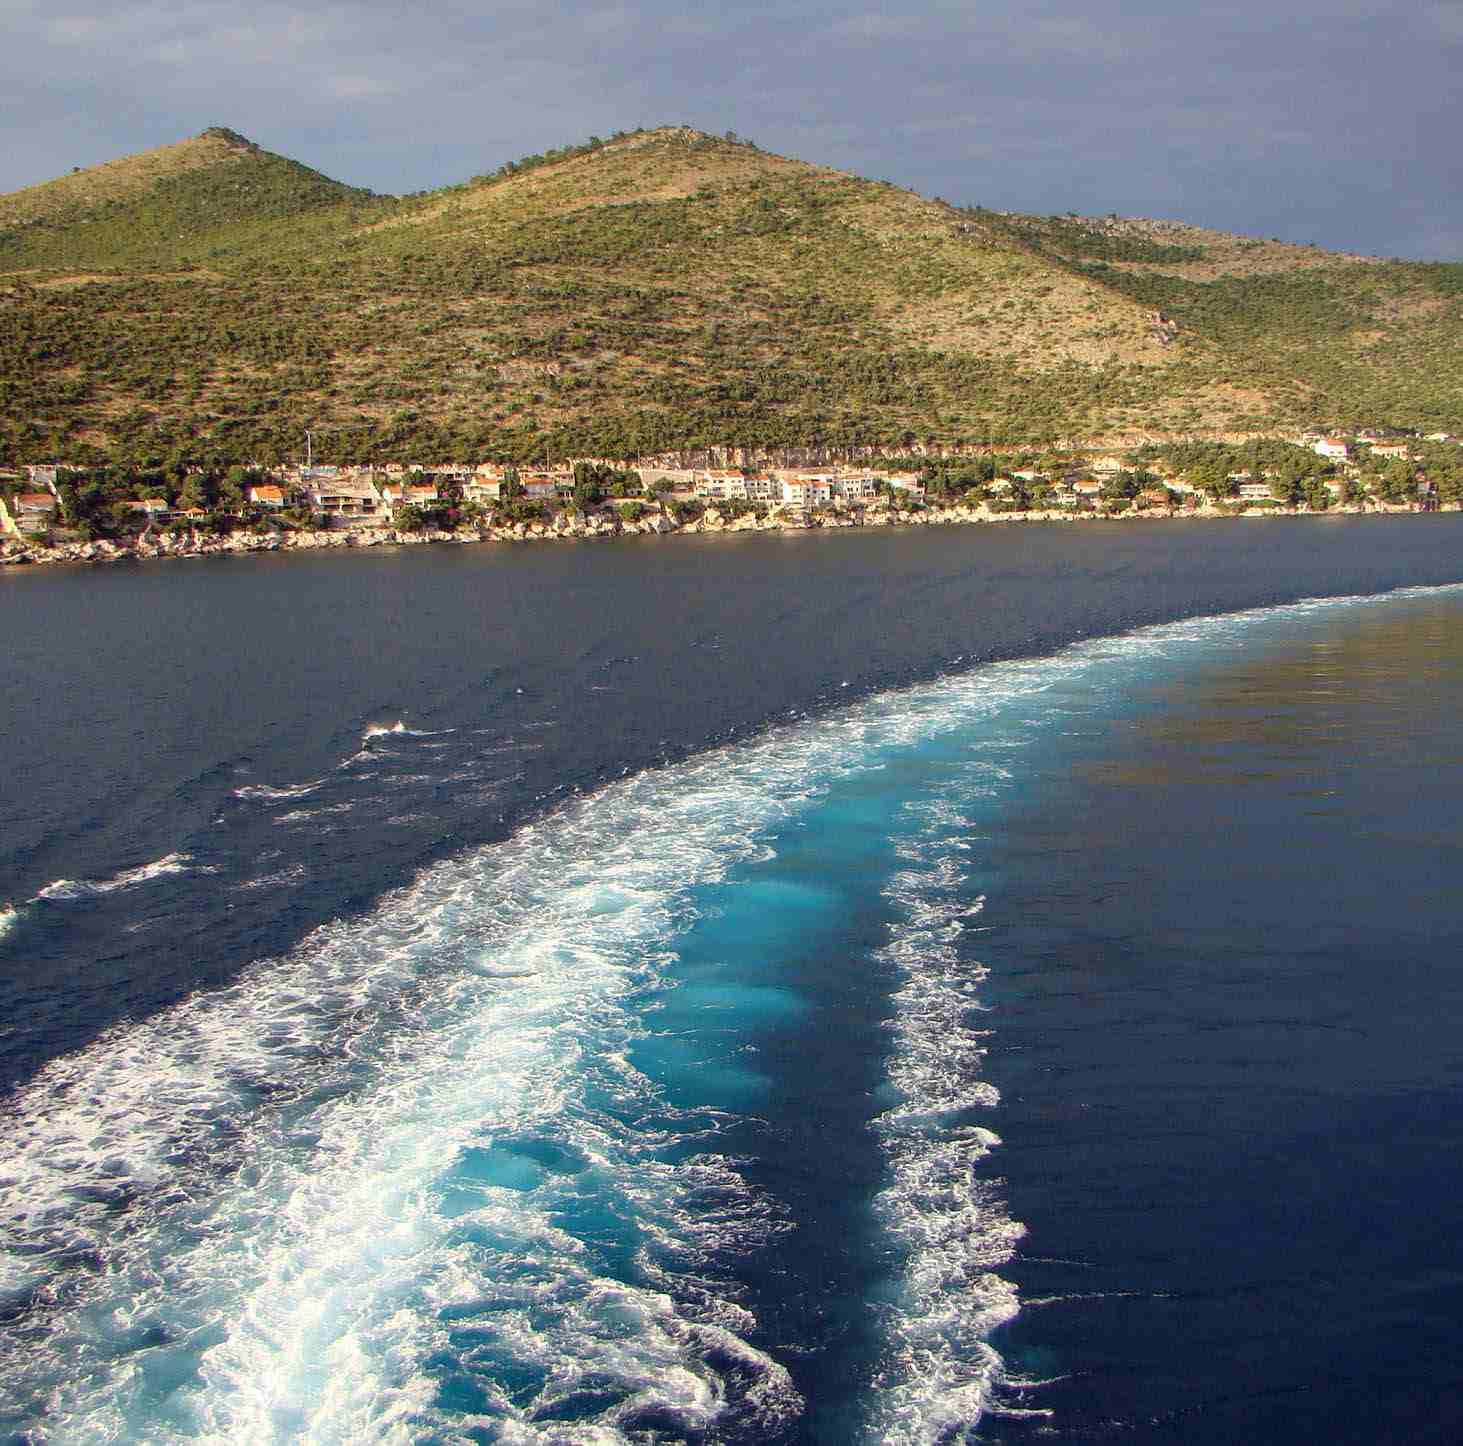 Repositioning cruises can save money on daily costs.